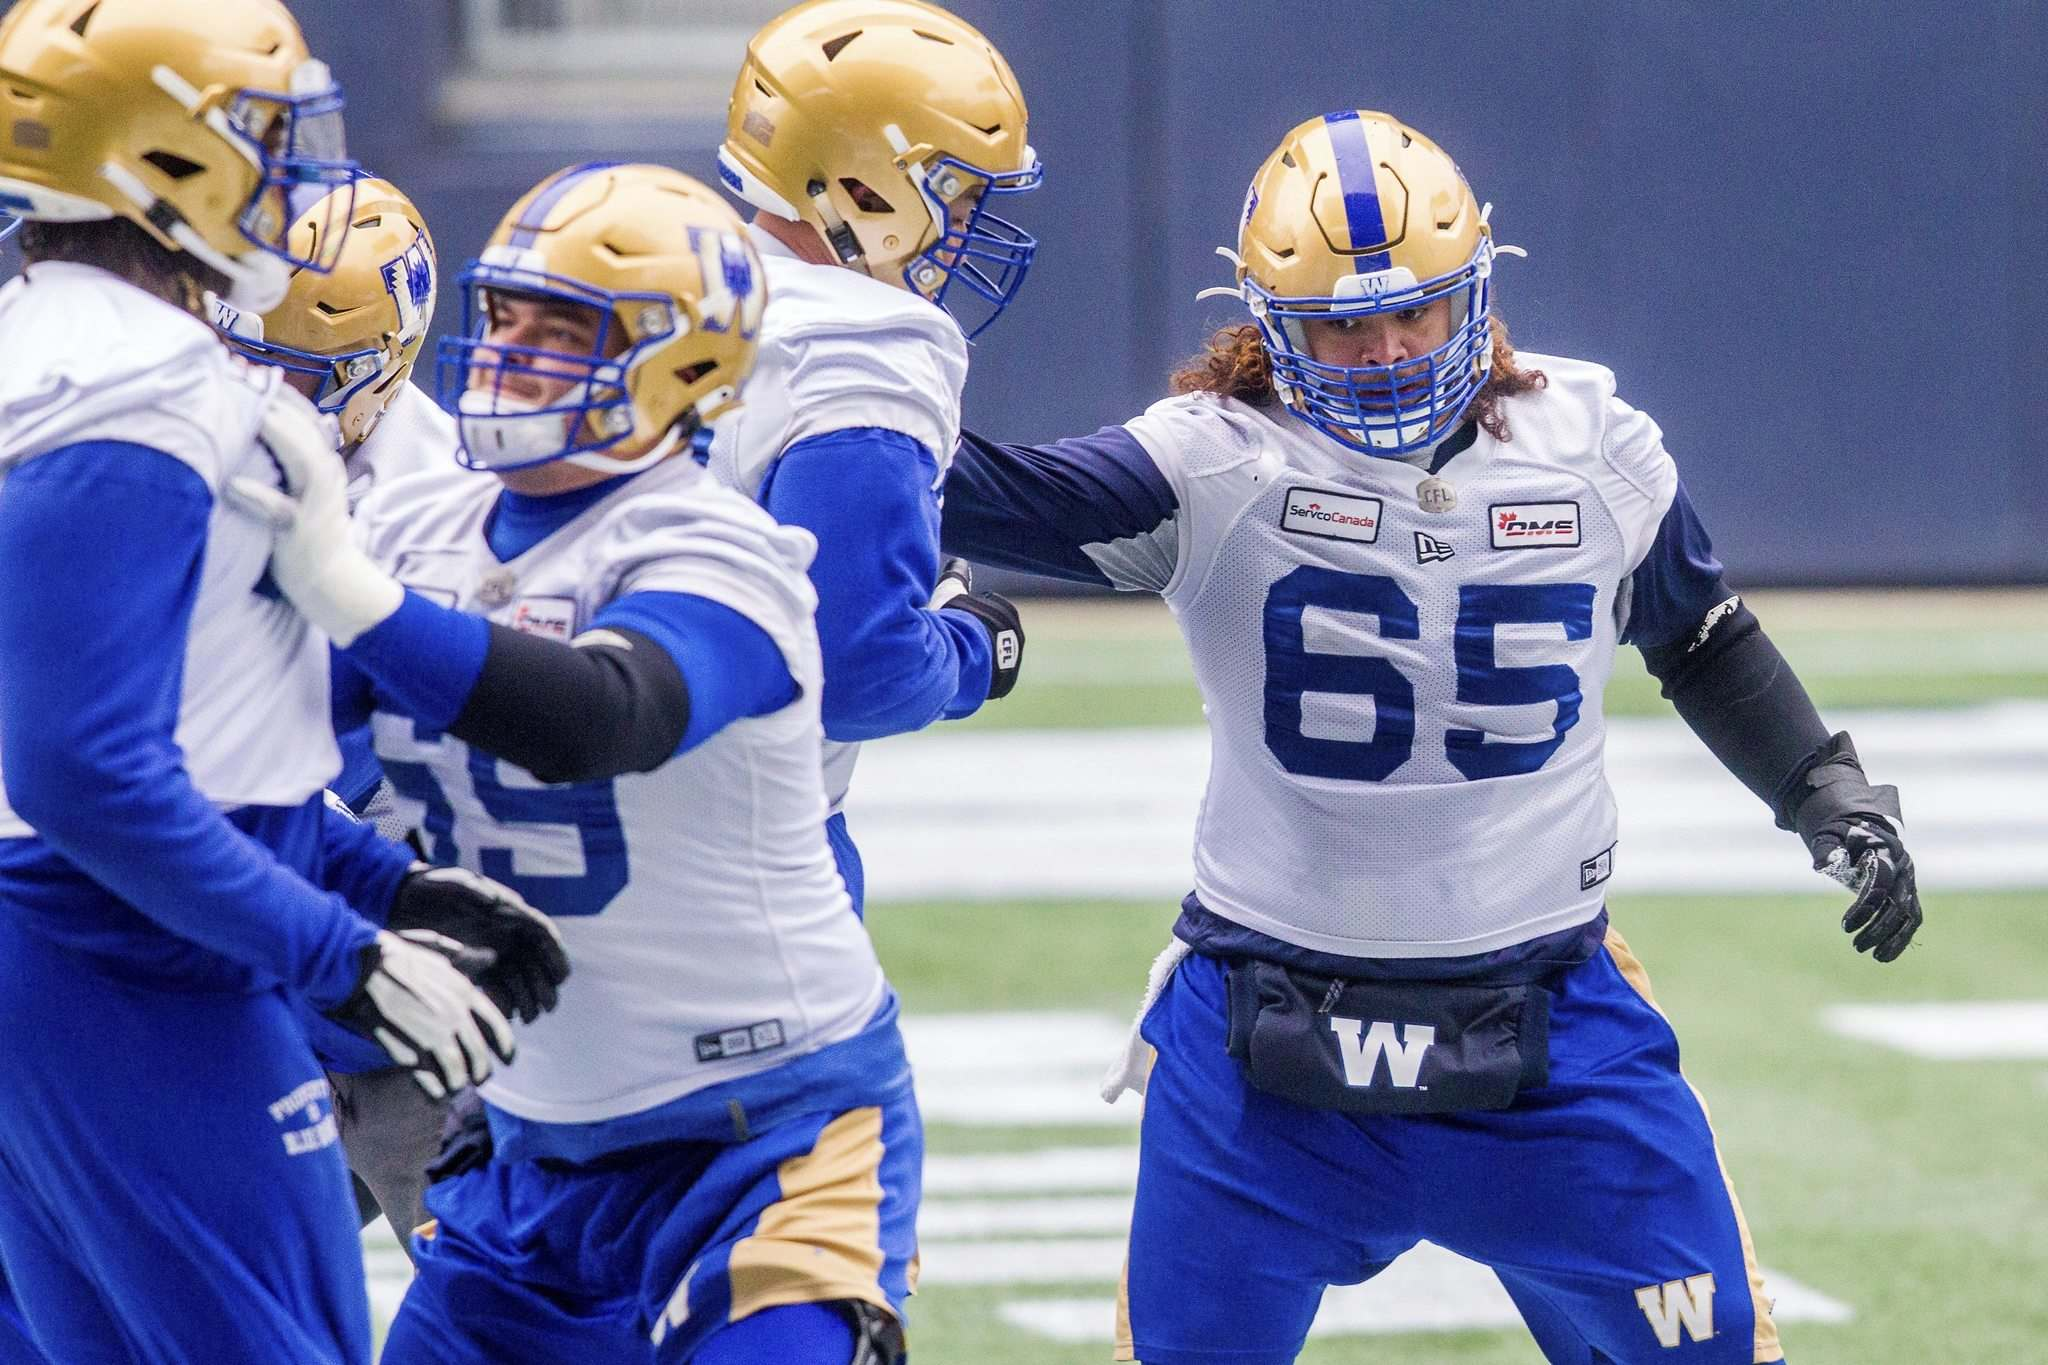 The Bombers are confident offensive lineman Asotui Eli (right) can fill in if Jermarcus Hardrick isn't able to play Friday against the Elks in Edmonton. (Mikaela MacKenzie / Winnipeg Free Press)</p>